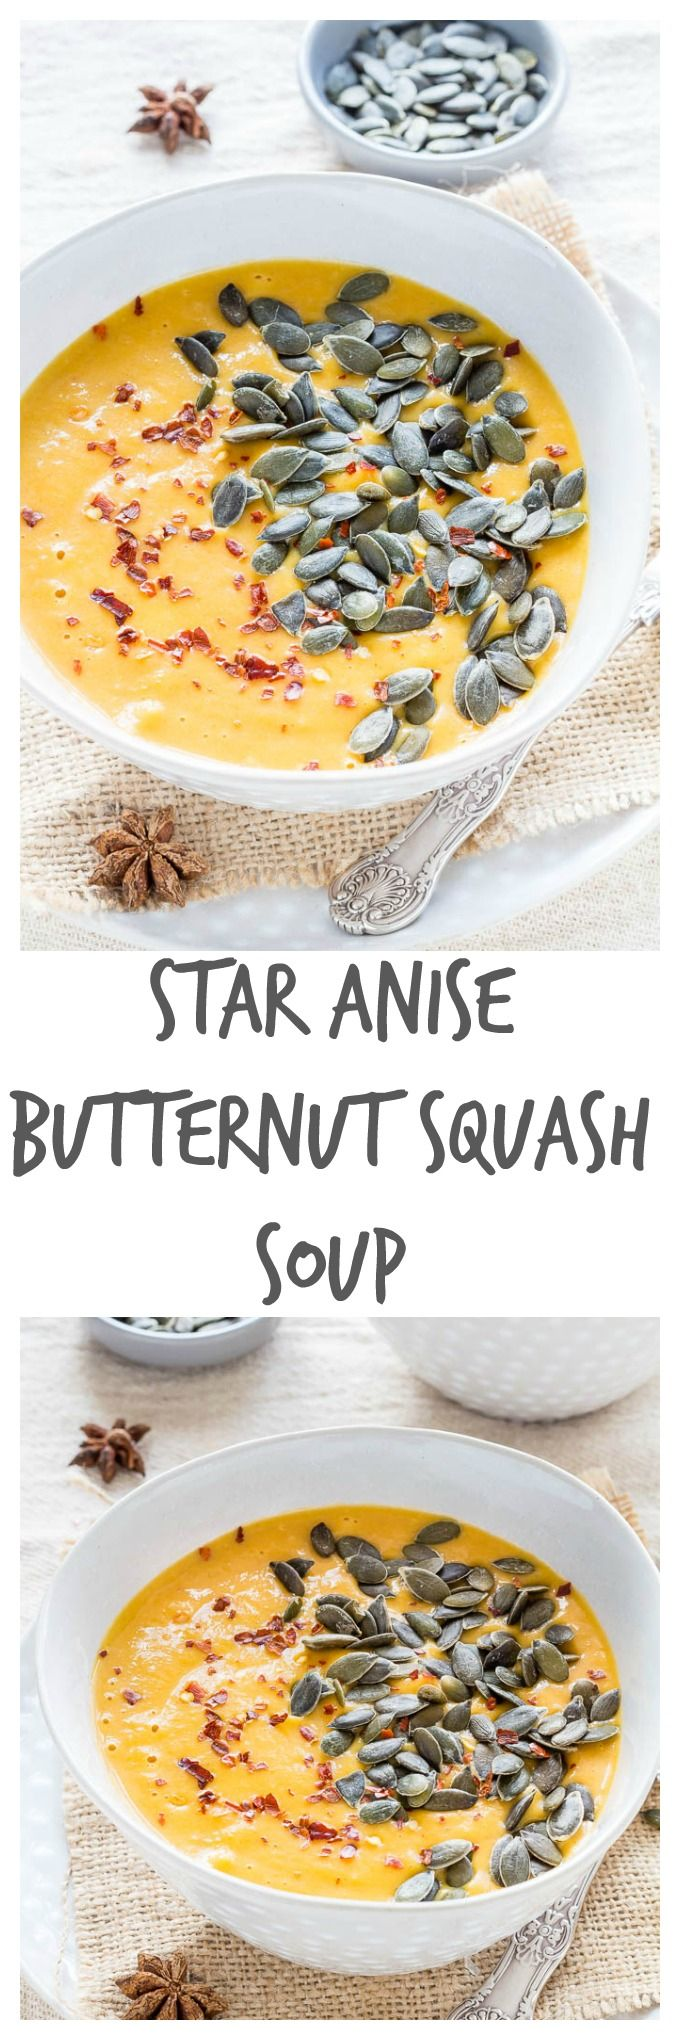 Star ANise Butternut Squash Soup | Recipes From A Pantry